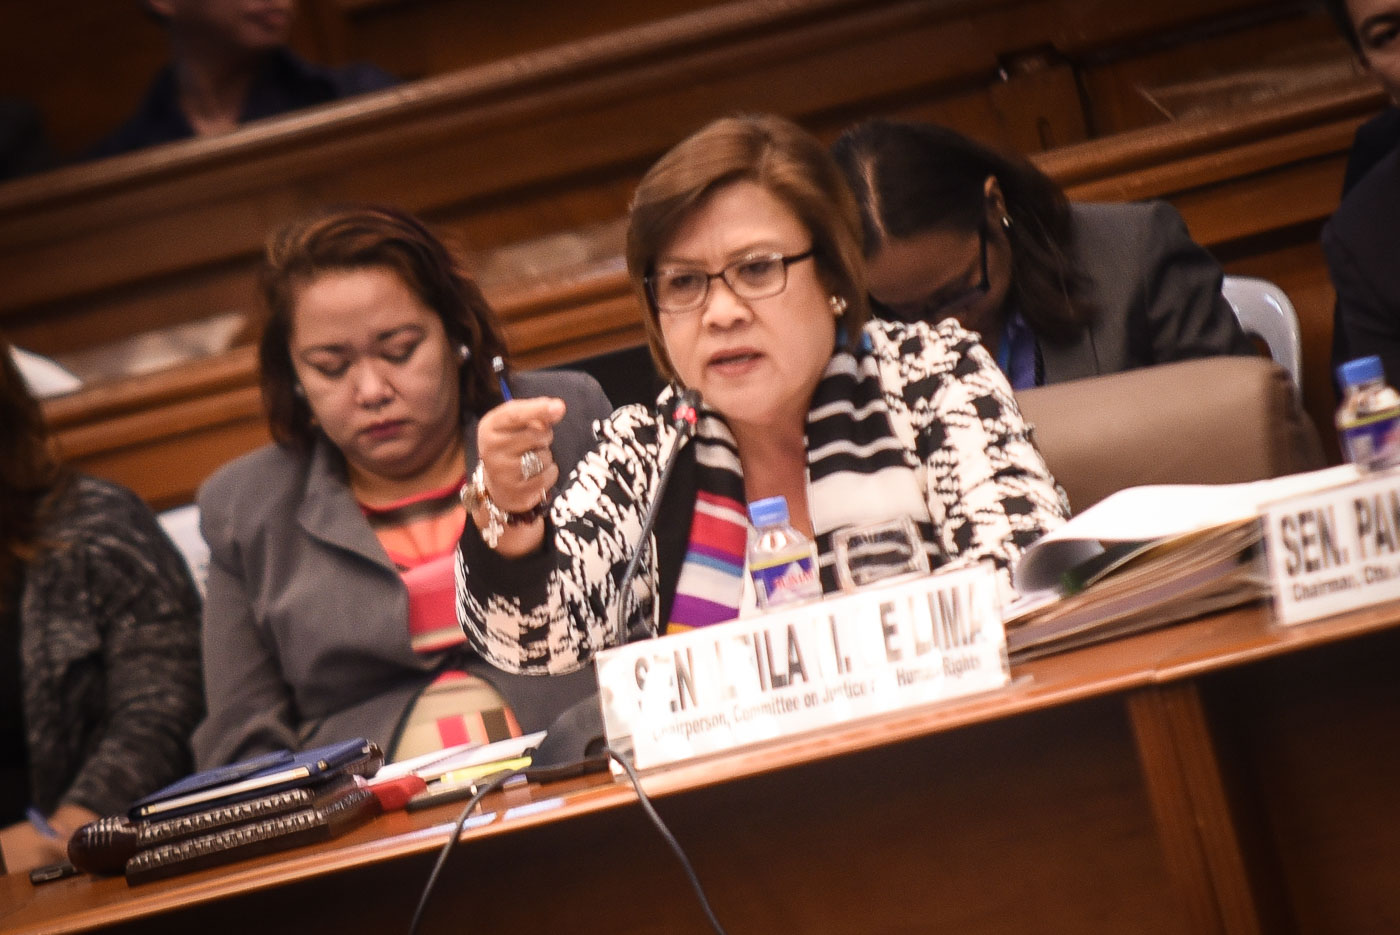 De Lima admits past relationship with driver bodyguard – report